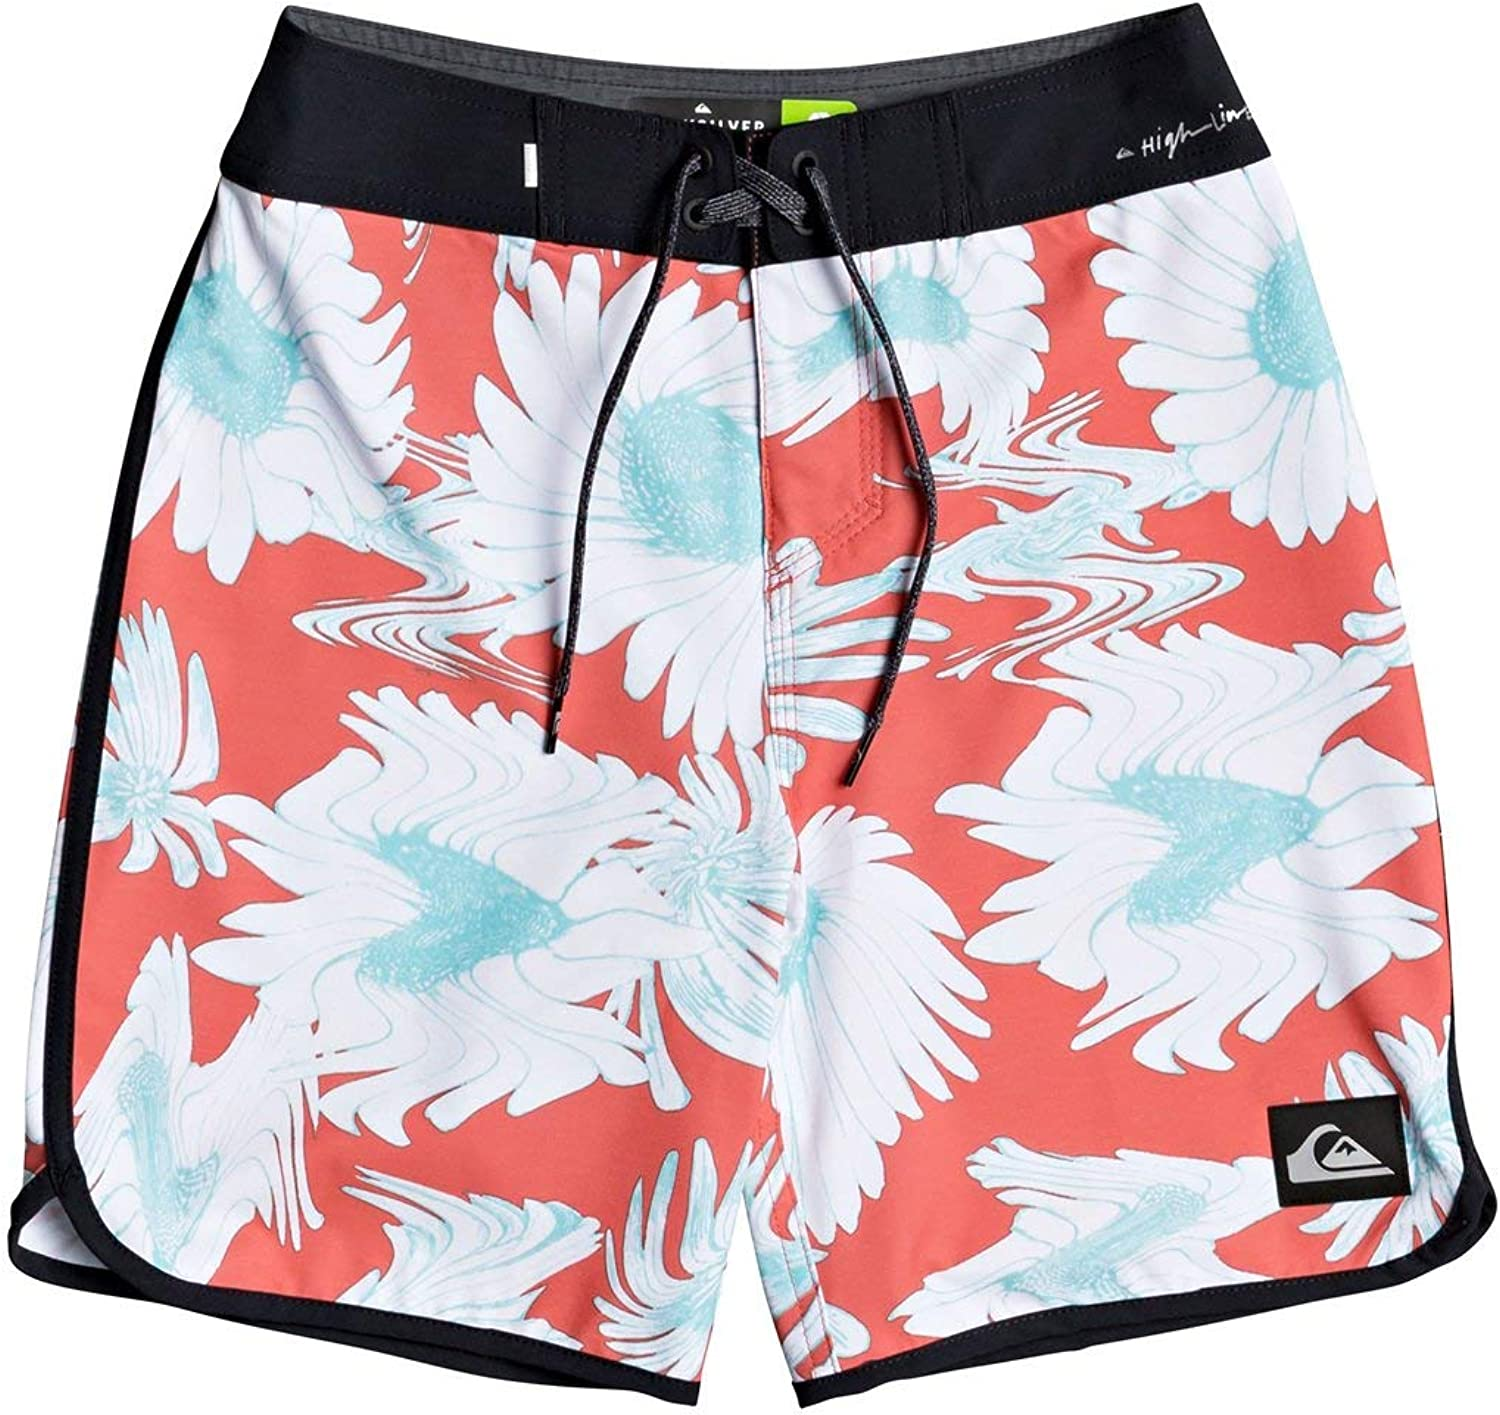 store Quiksilver Boys' Highline Warped Youth Boardshort Trunk Max 60% OFF 17 Swim